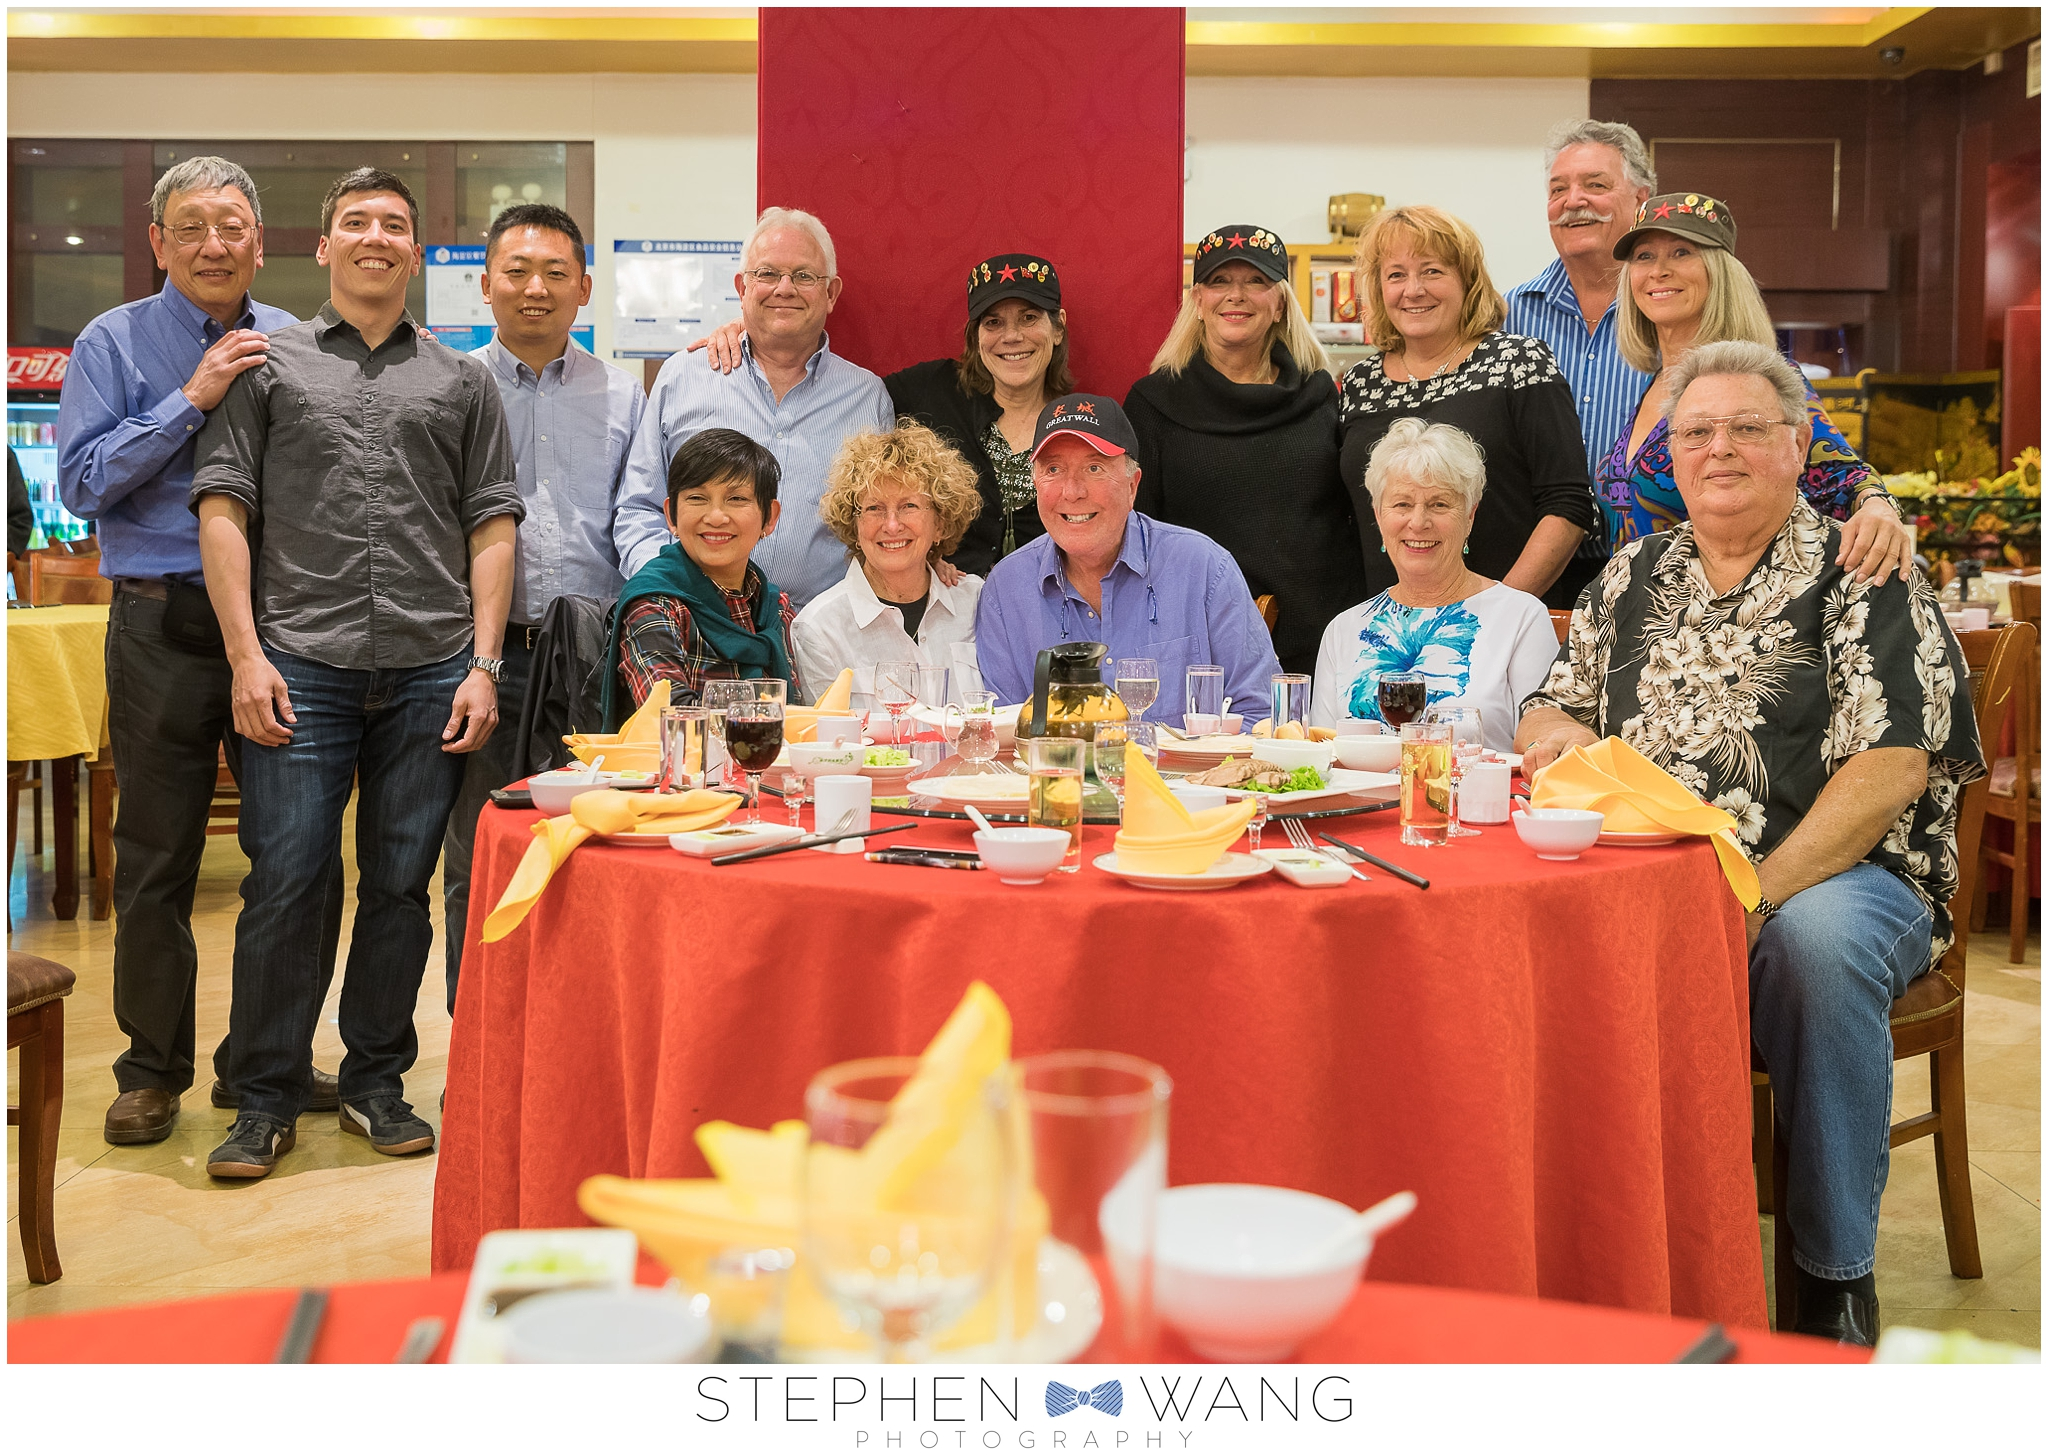 A group photo of our travel mates during our last night in China.  Our guide Jason did a fantastic job showing us around, organizing our accommodations, and sharing his vast knowledge of his country with us.  A great group all around!